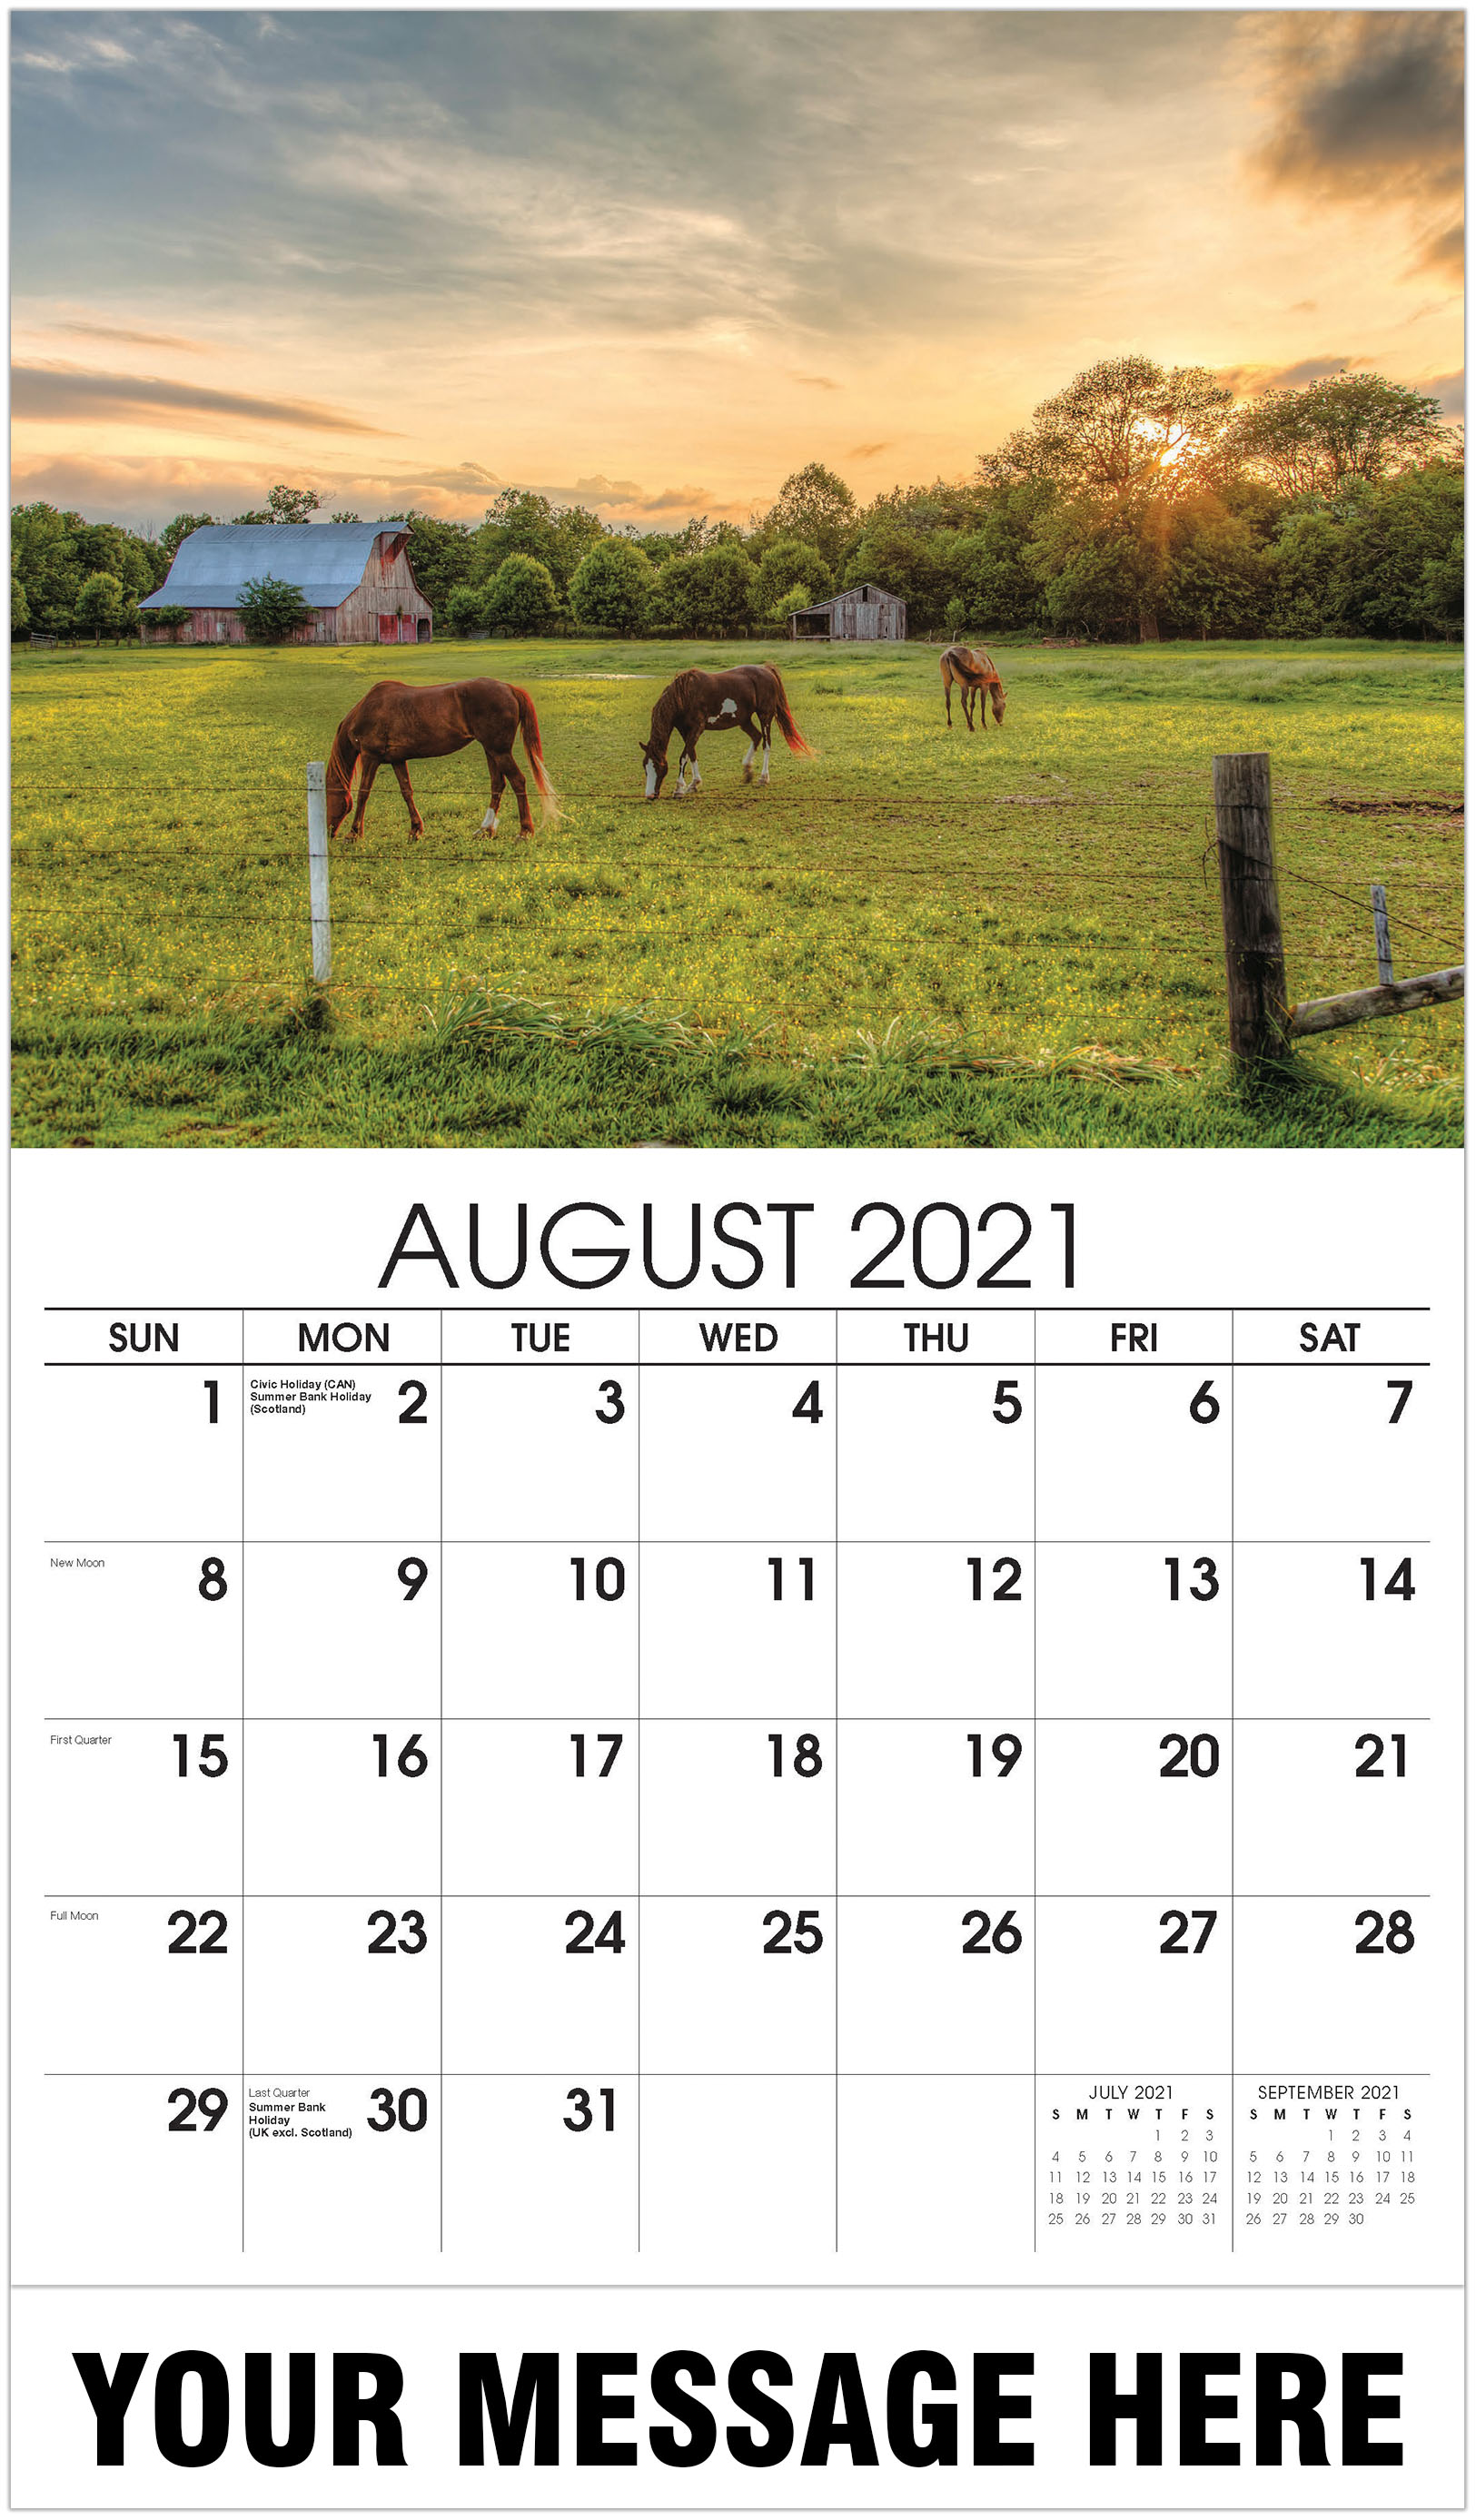 Horses in field - August - Country Spirit 2021 Promotional Calendar